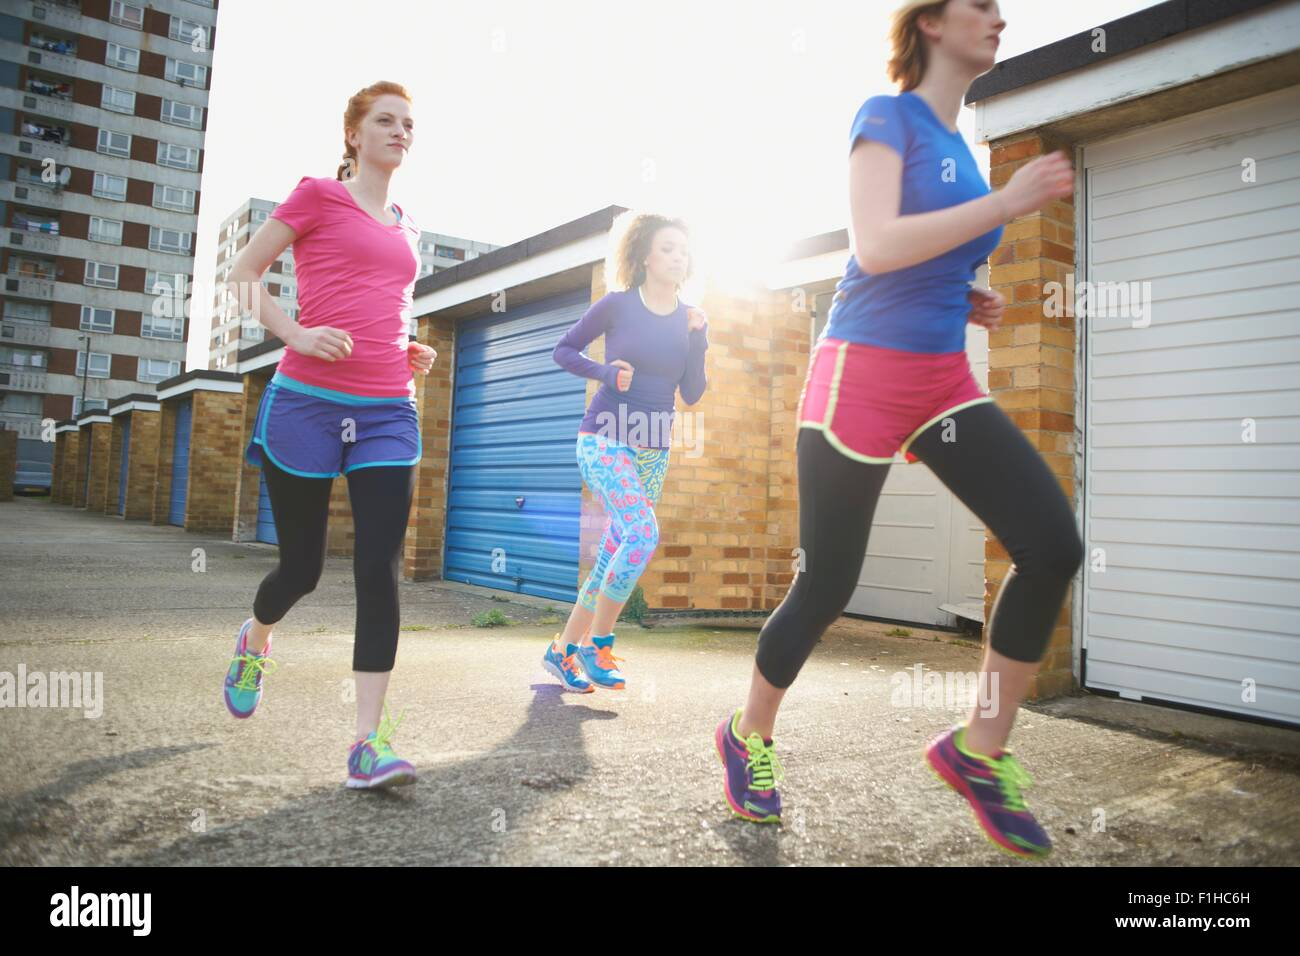 Three women exercising and jogging together - Stock Image